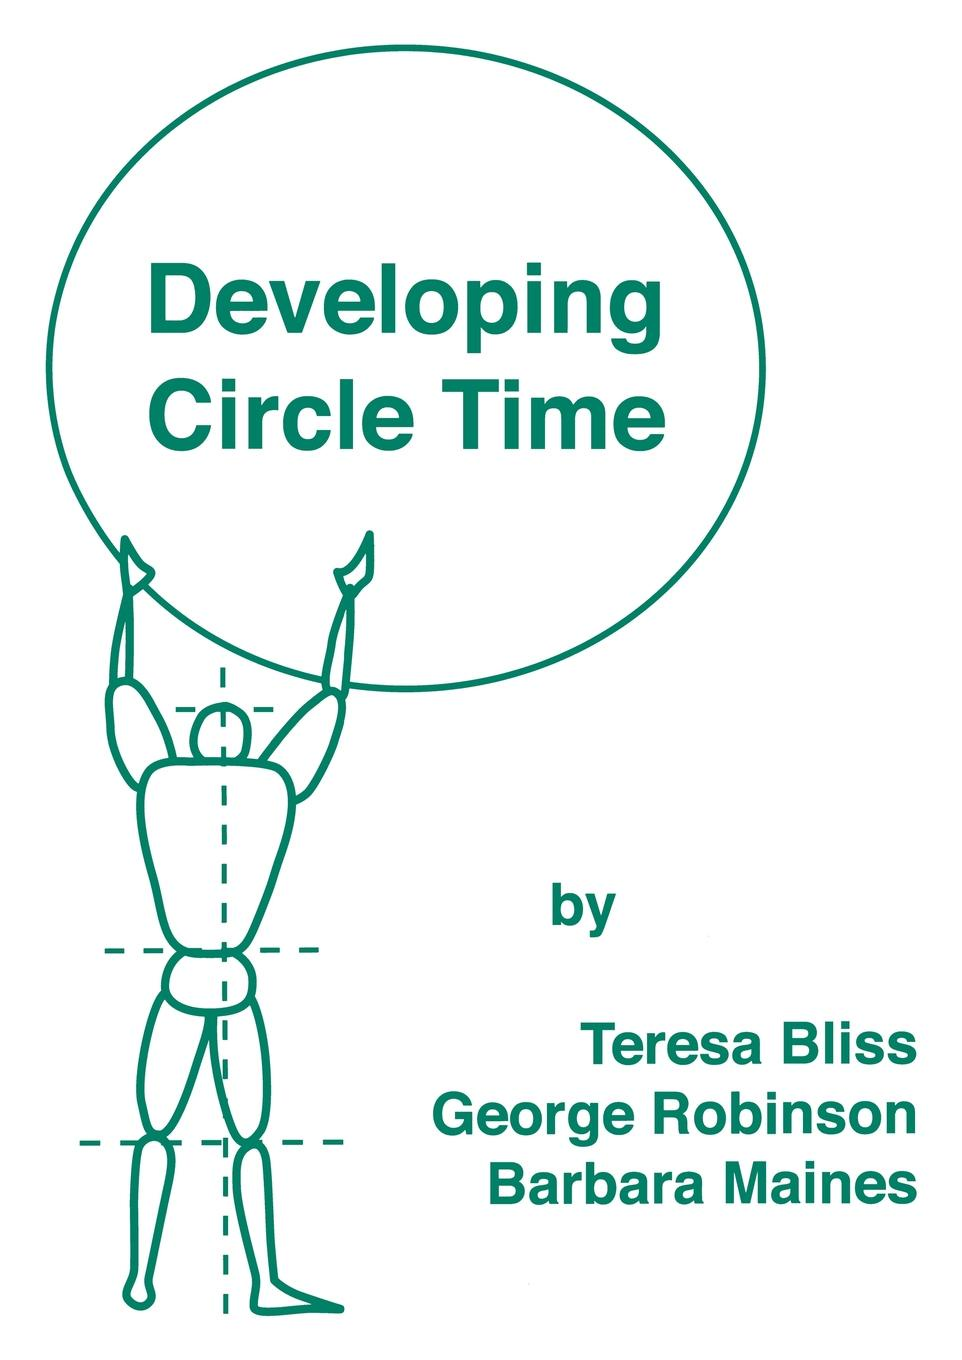 Teresa Bliss, George Robinson, Goerge Robinson Developing Circle Time. Taking Circle Time Much Further alloy circle ball bead earrings